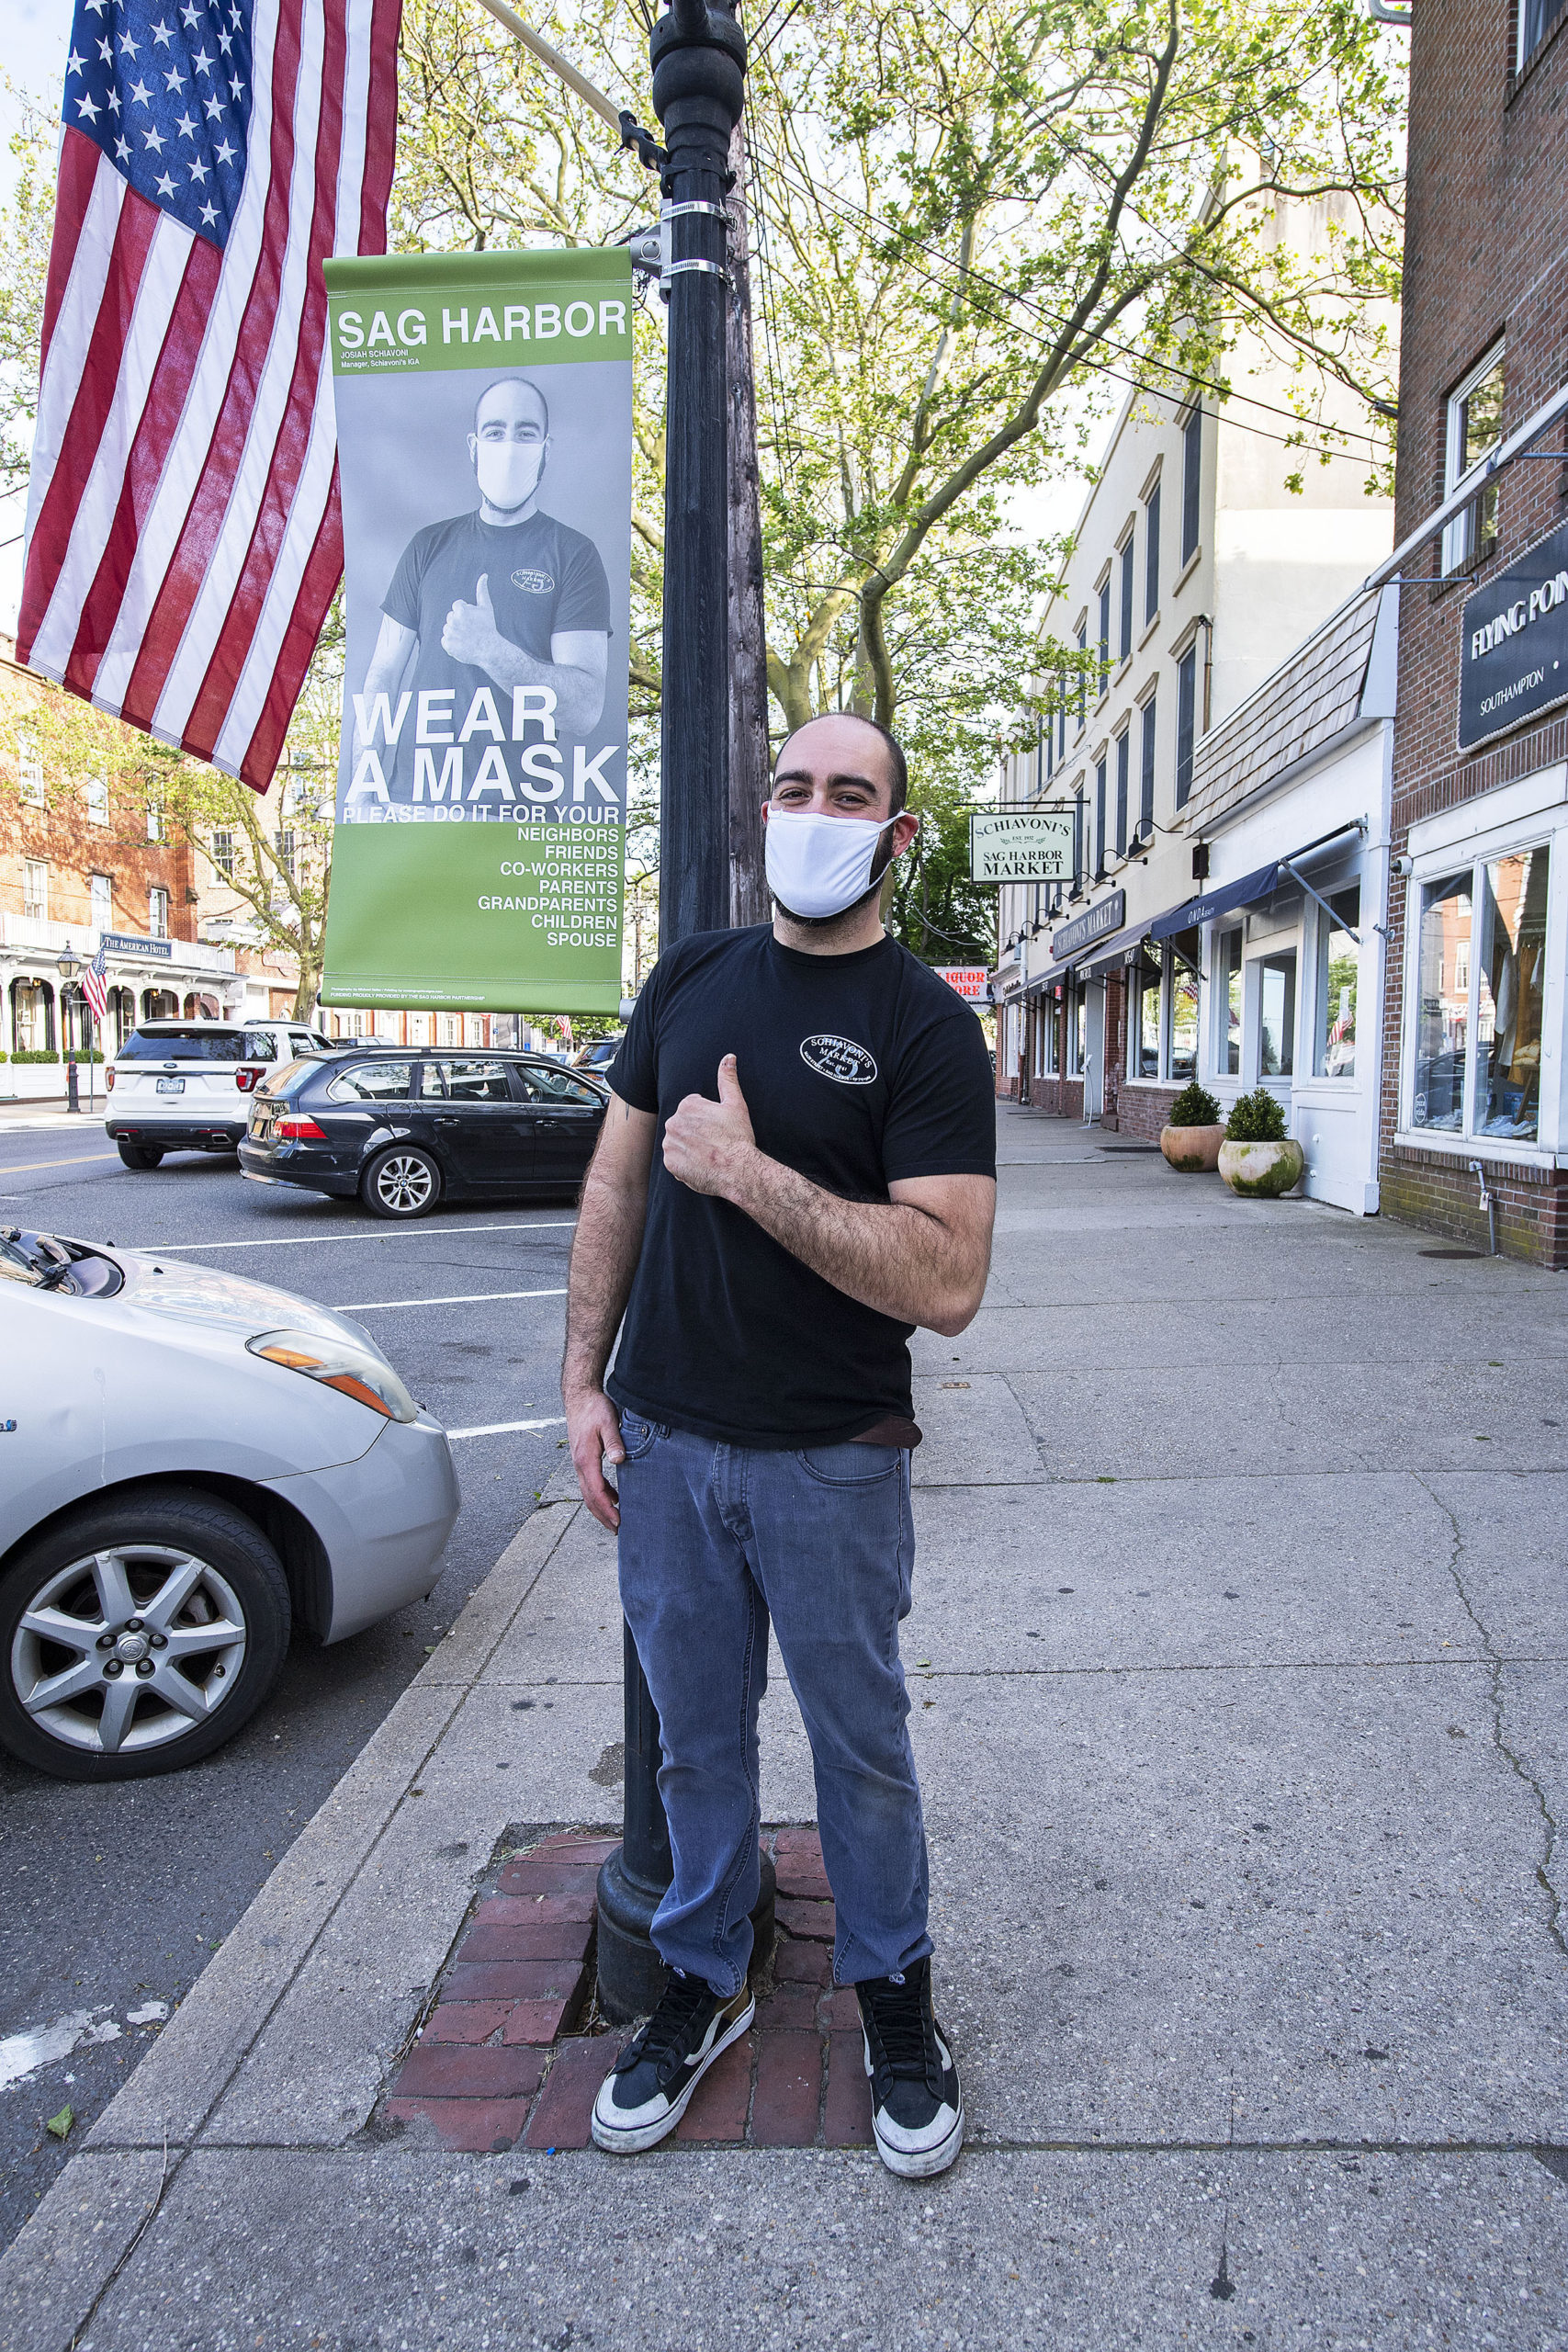 Josiah Schiavoni in front of the banner on Main Street he posed for as part of the Sag Harbor Wear A Mask campaign, photographed on Friday.  MICHAEL HELLER